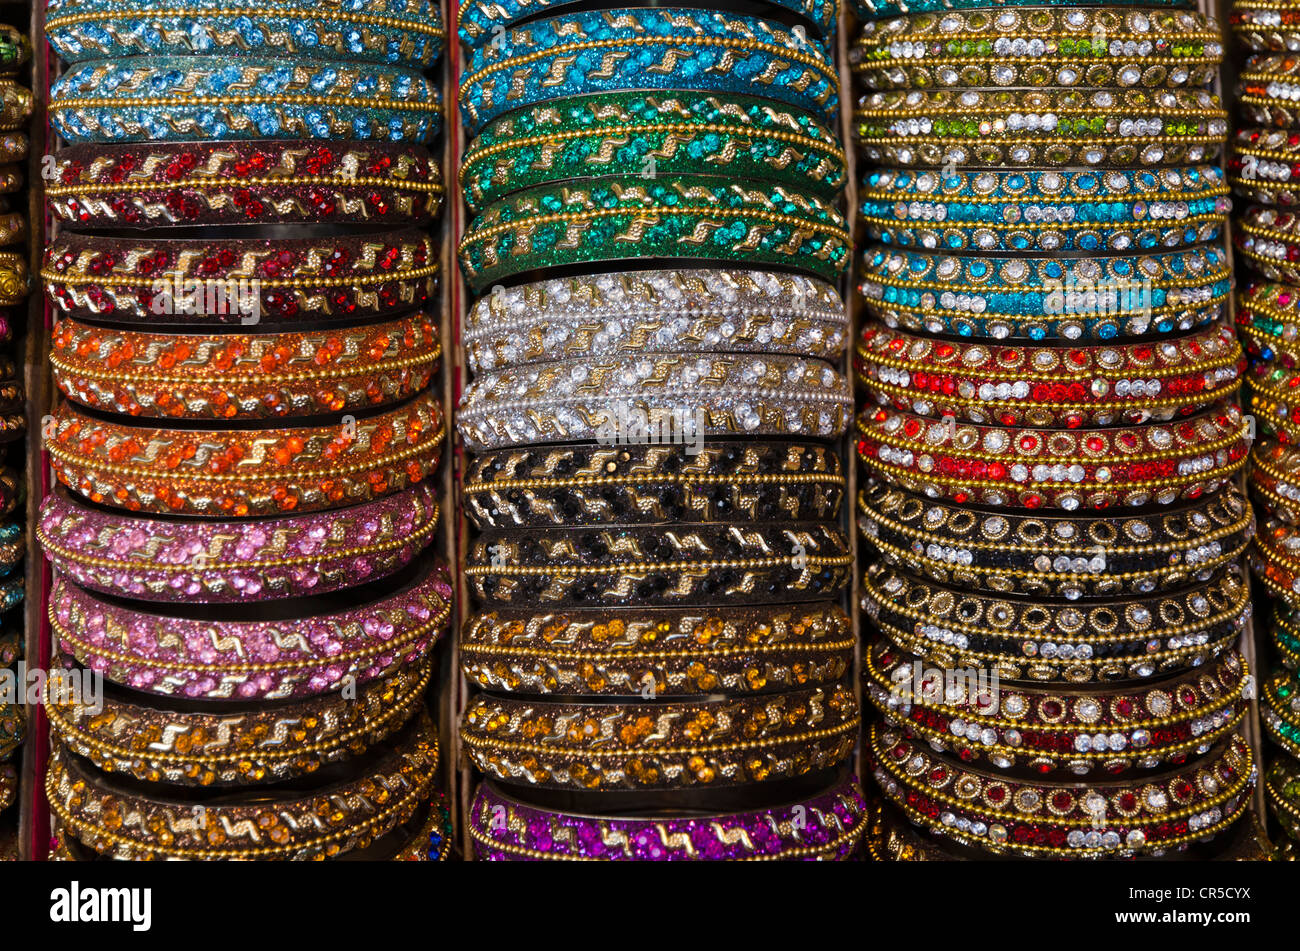 Indian Glass Bangles And Indian Bangles Have A Mythical